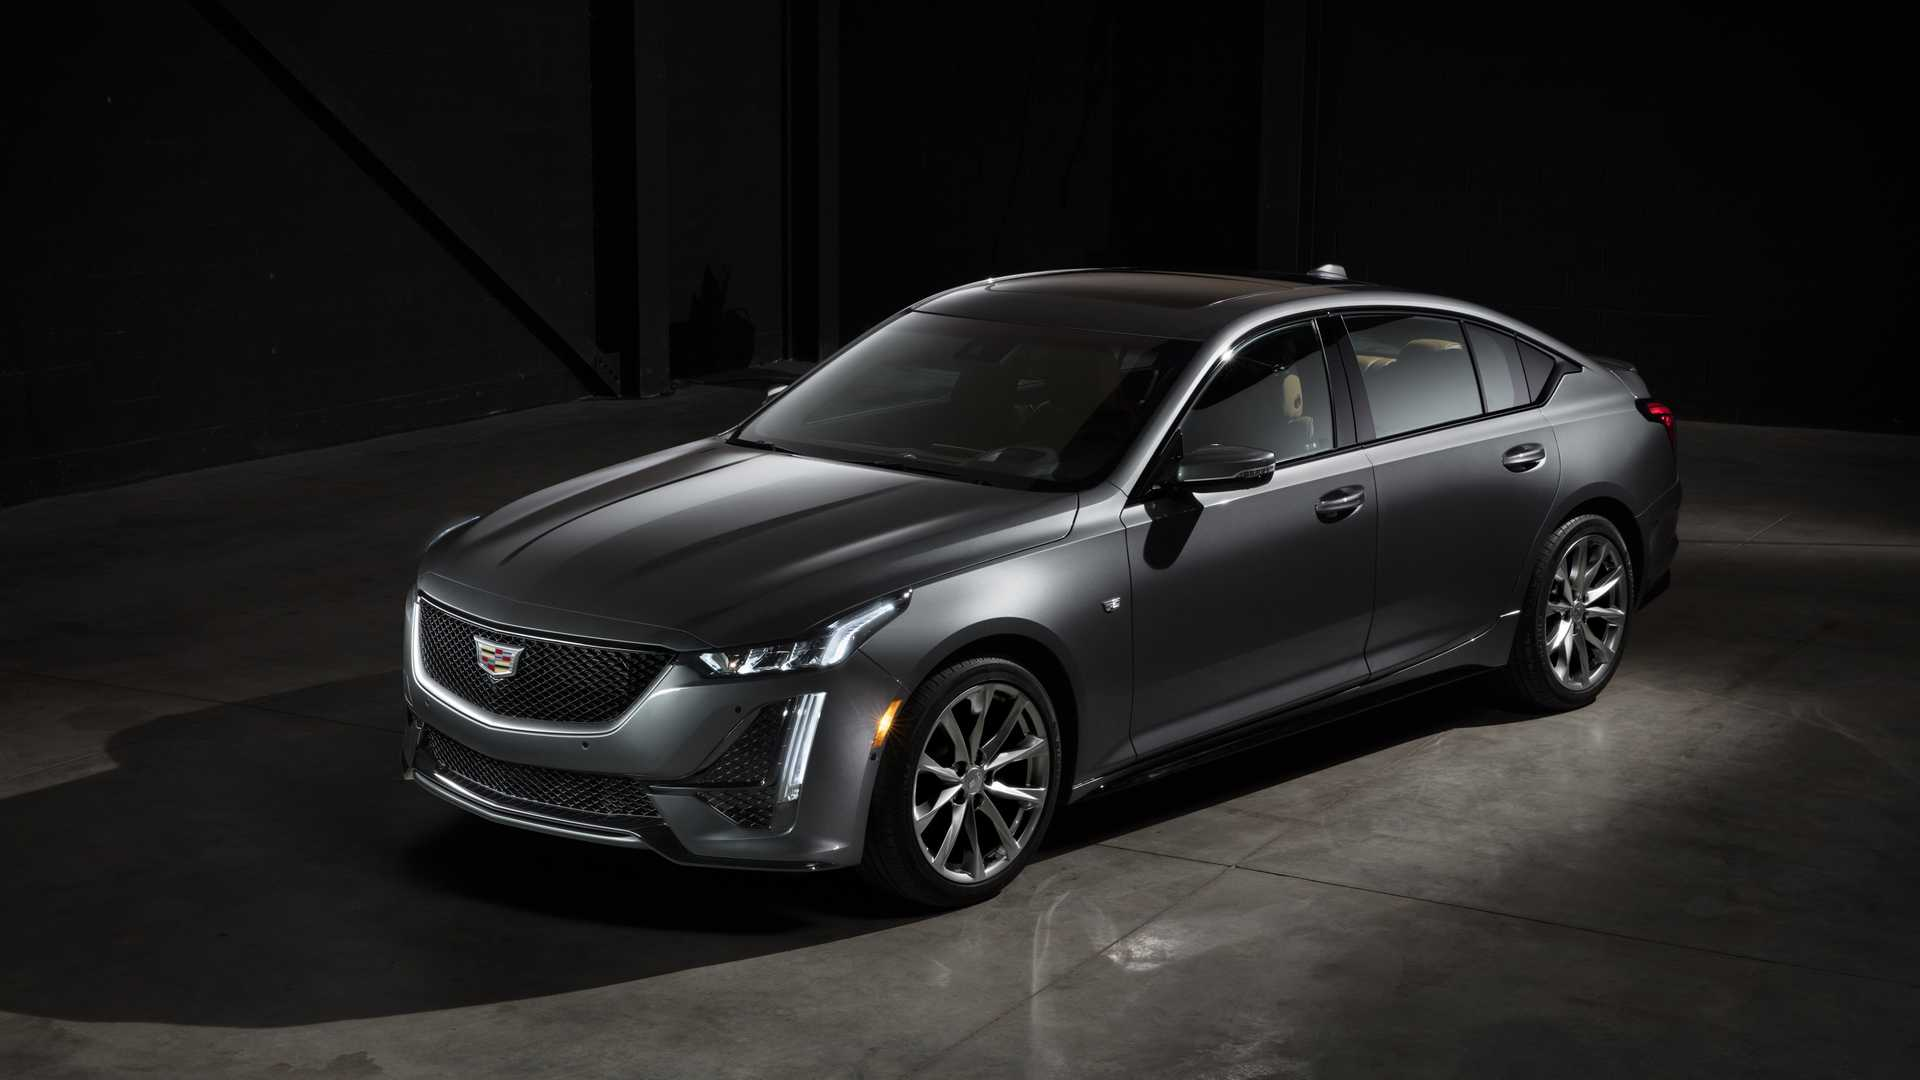 83 A Photos Of 2020 Cadillac Ct5 Spesification